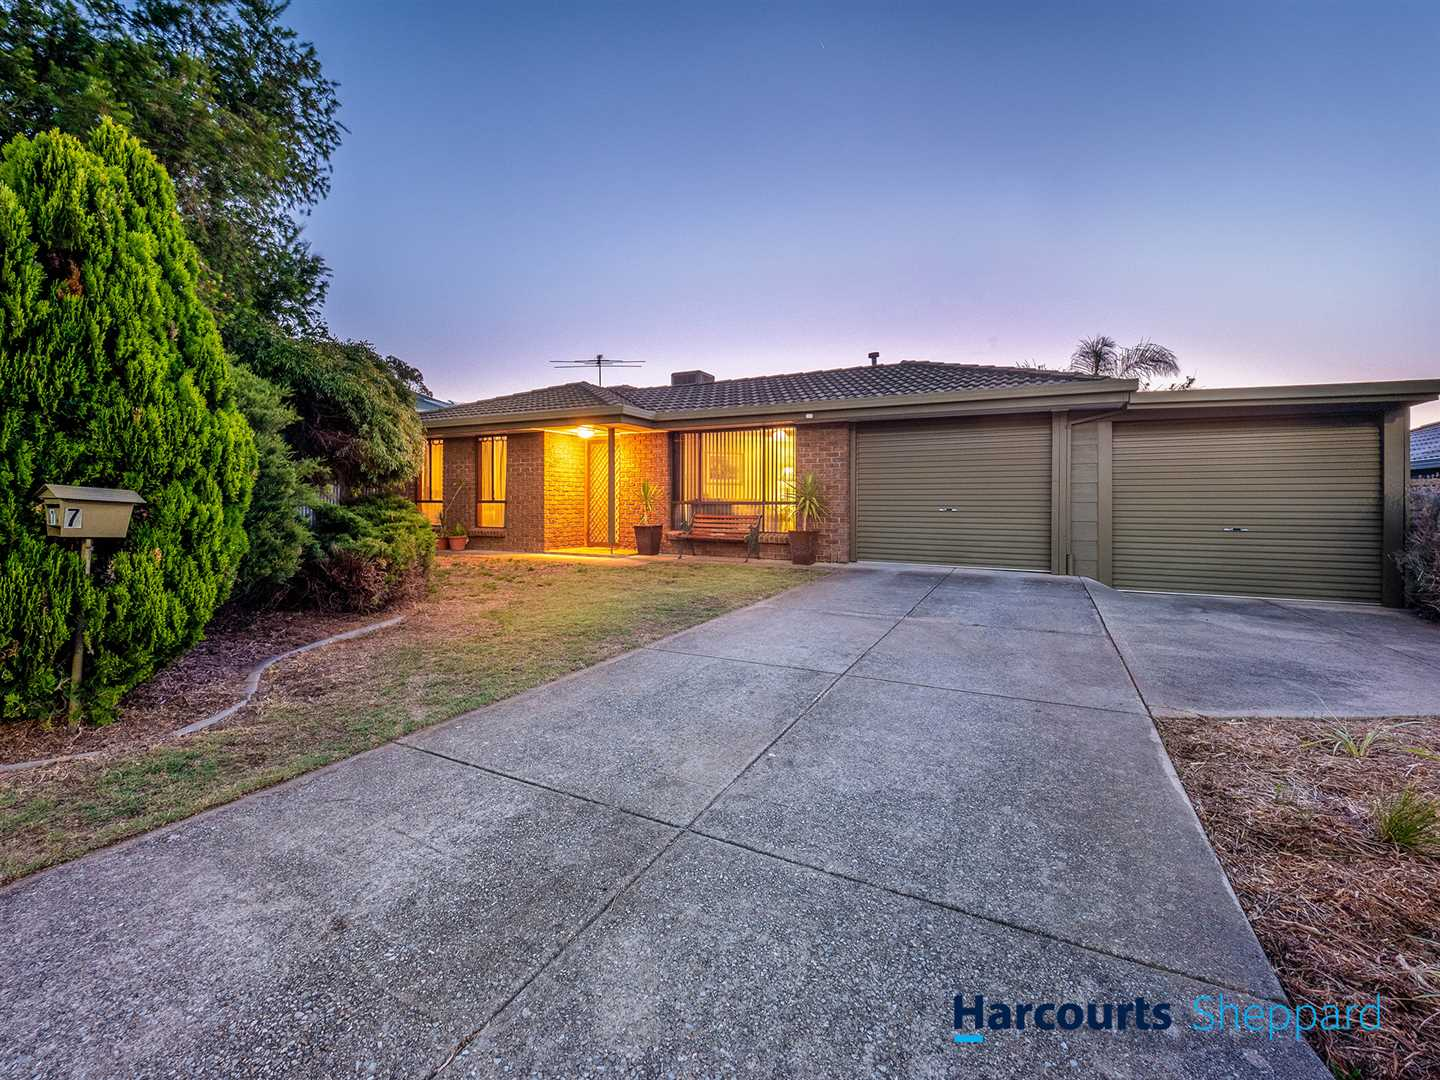 Ideal Family Home Or First Investment